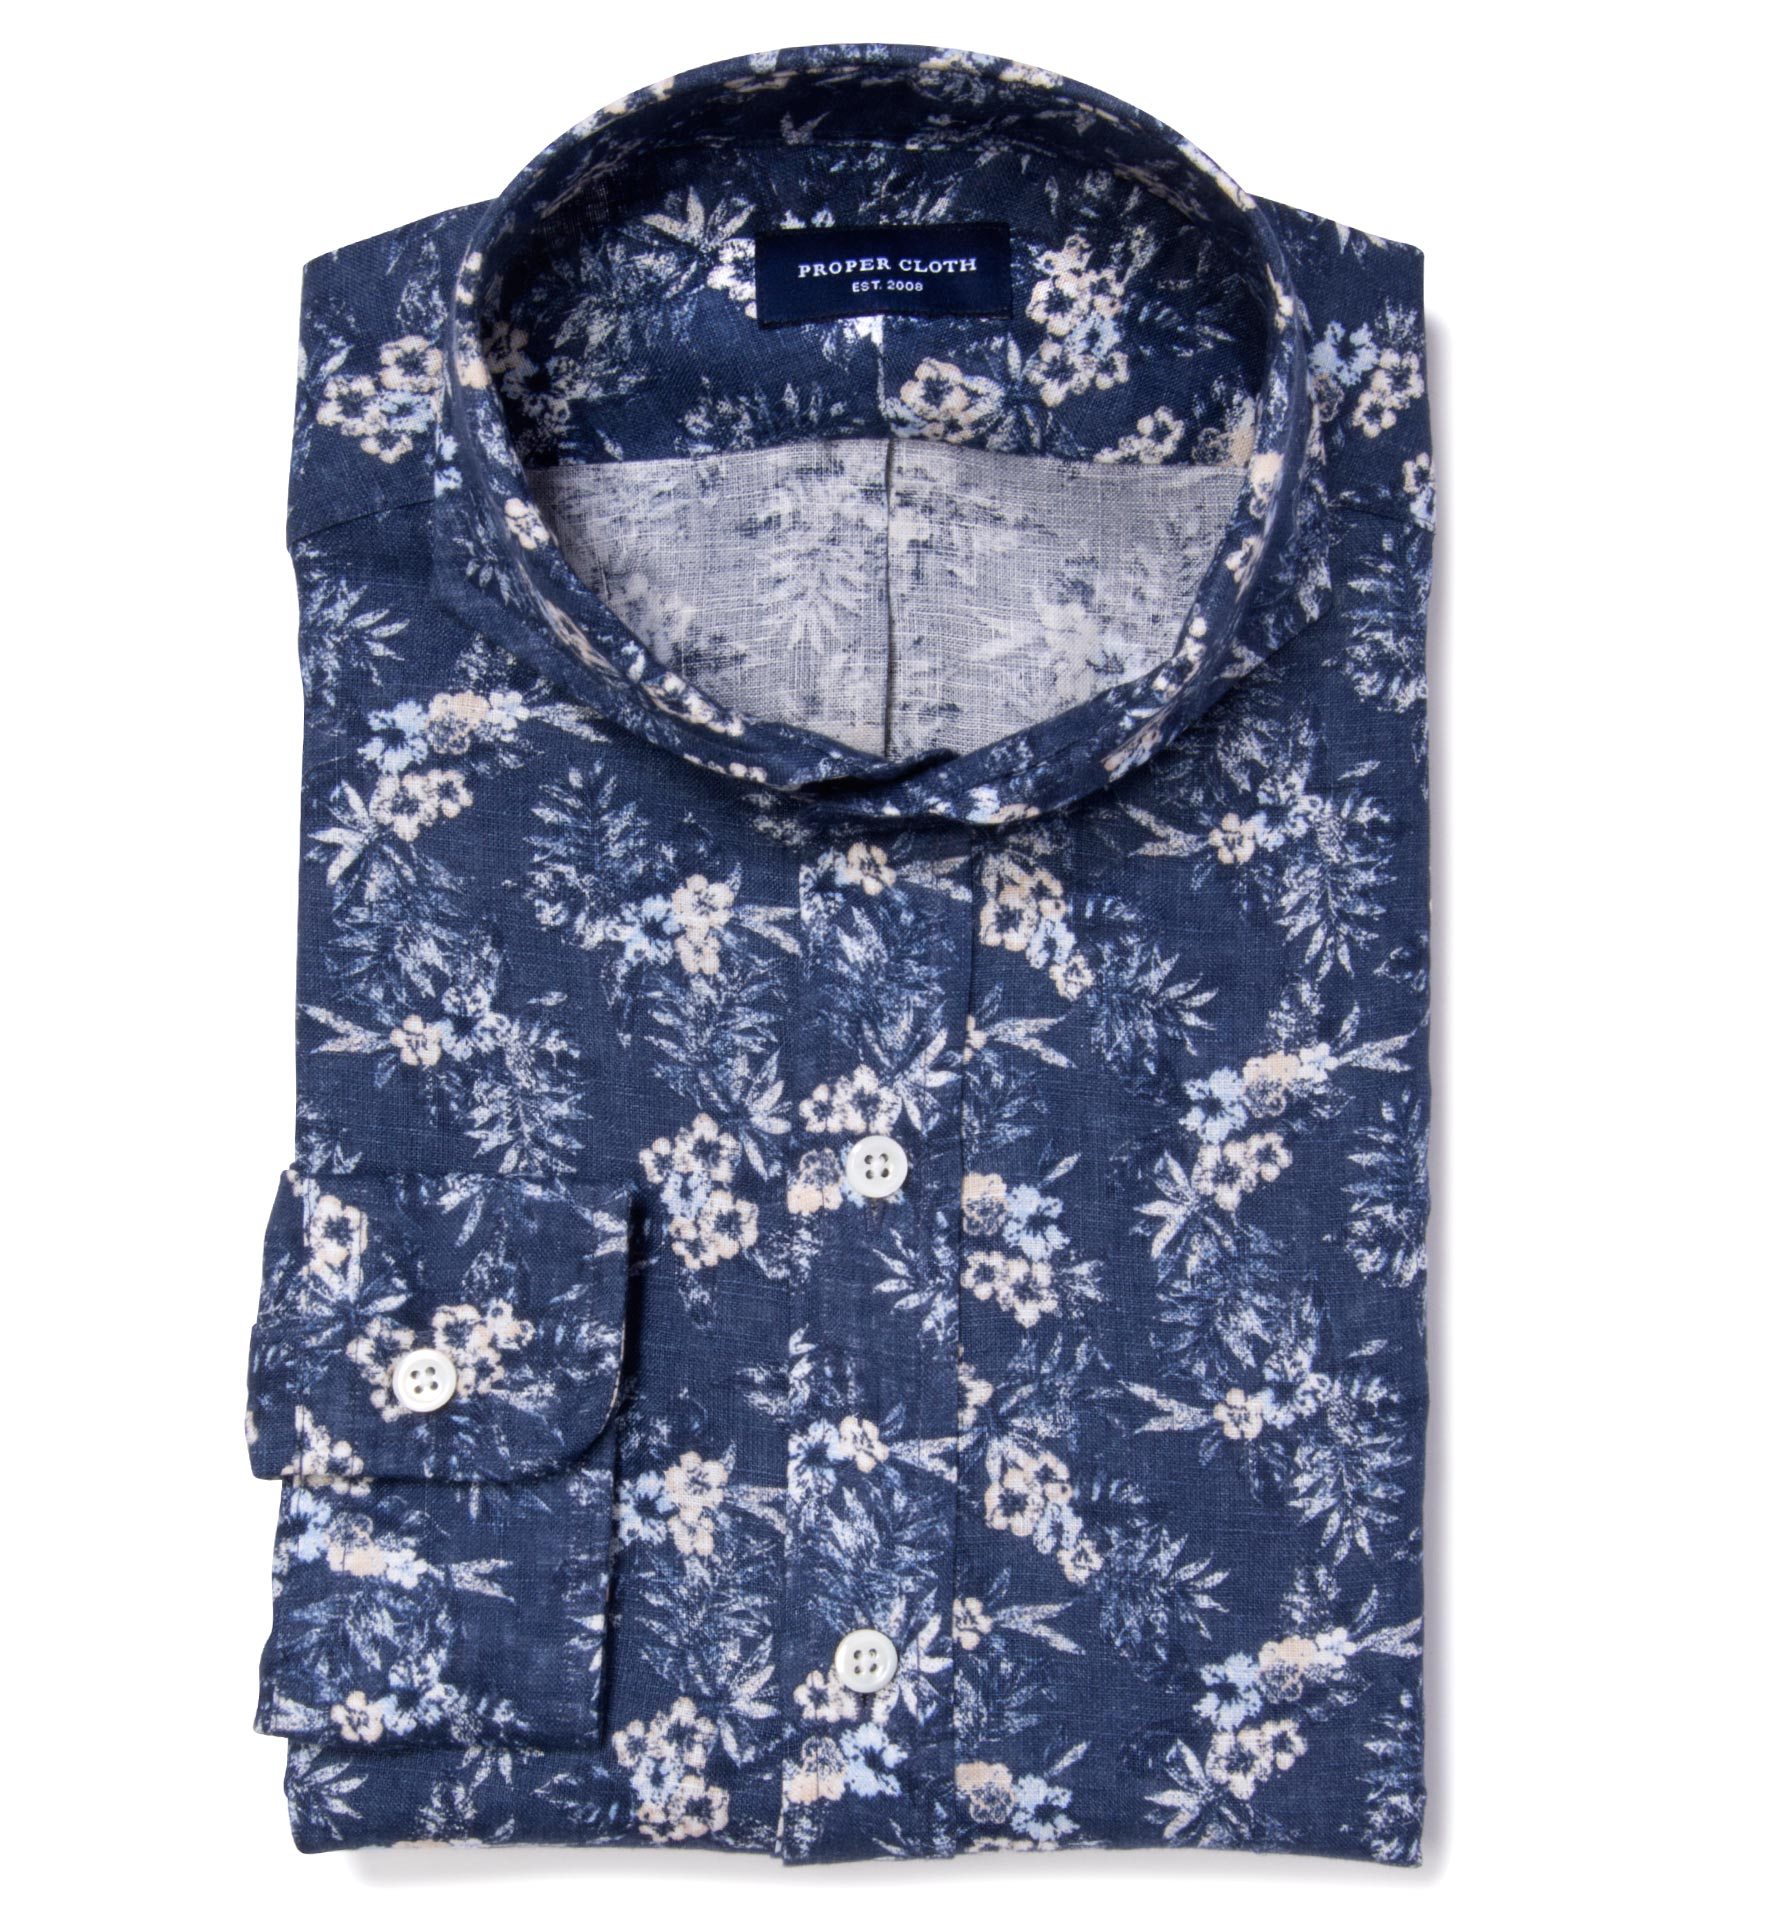 Very Goods Albini Blue Floral Printed Linen Custom Dress Shirt By